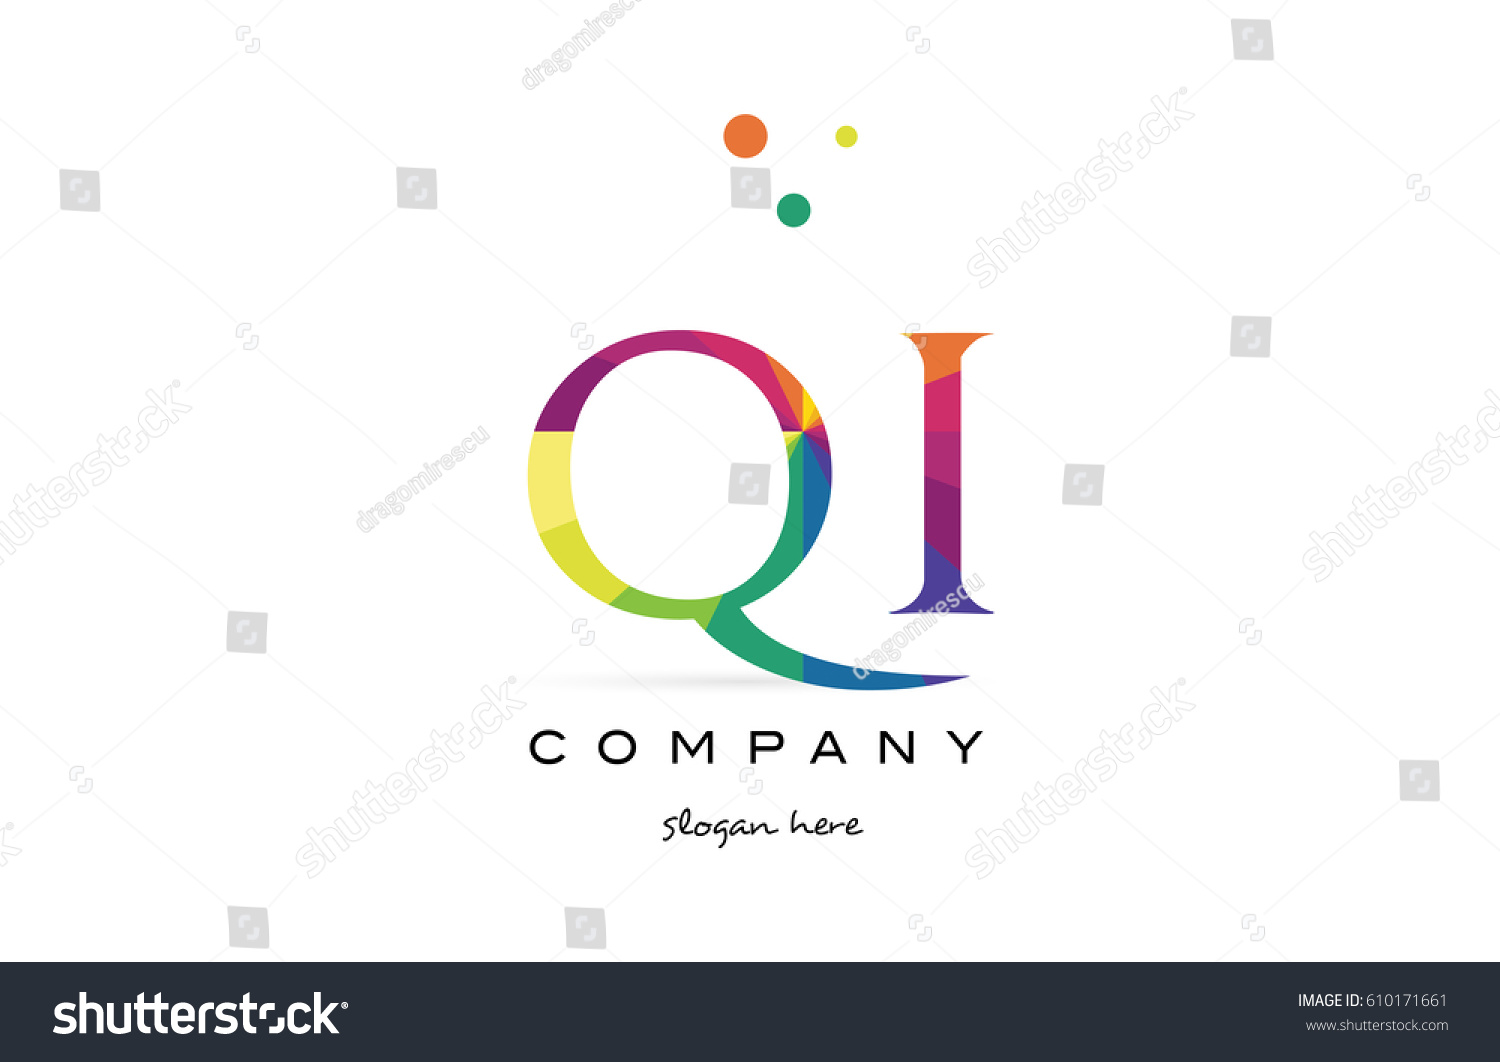 qi q i creative rainbow colors colored alphabet company letter logo design  vector icon template